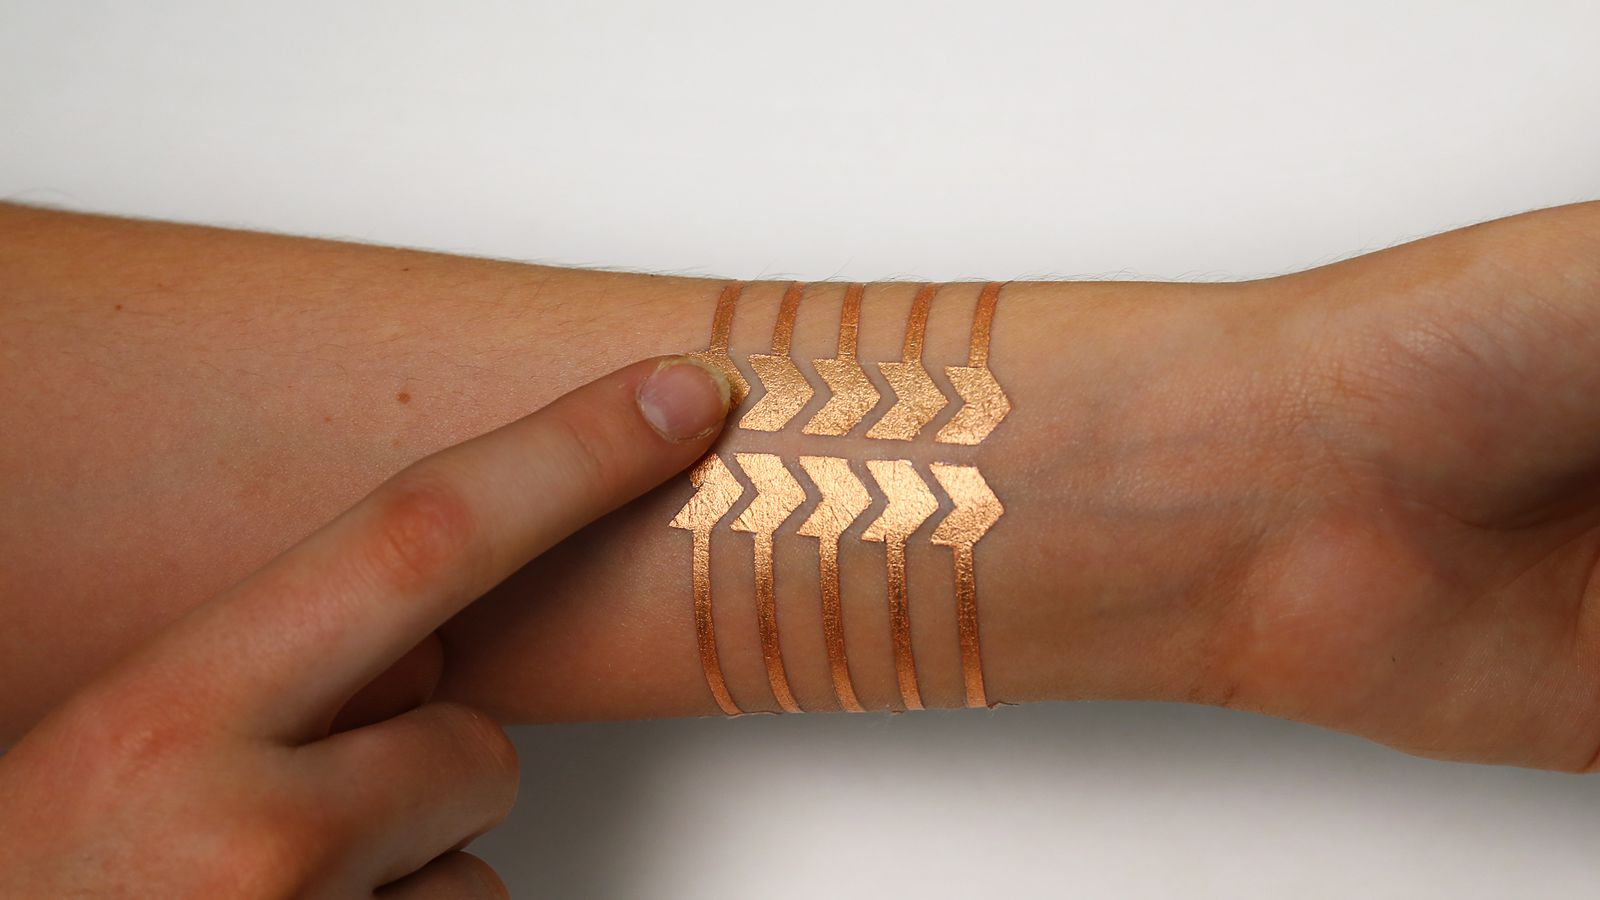 Smart Tattoos Under Development By Group of MIT Researchers